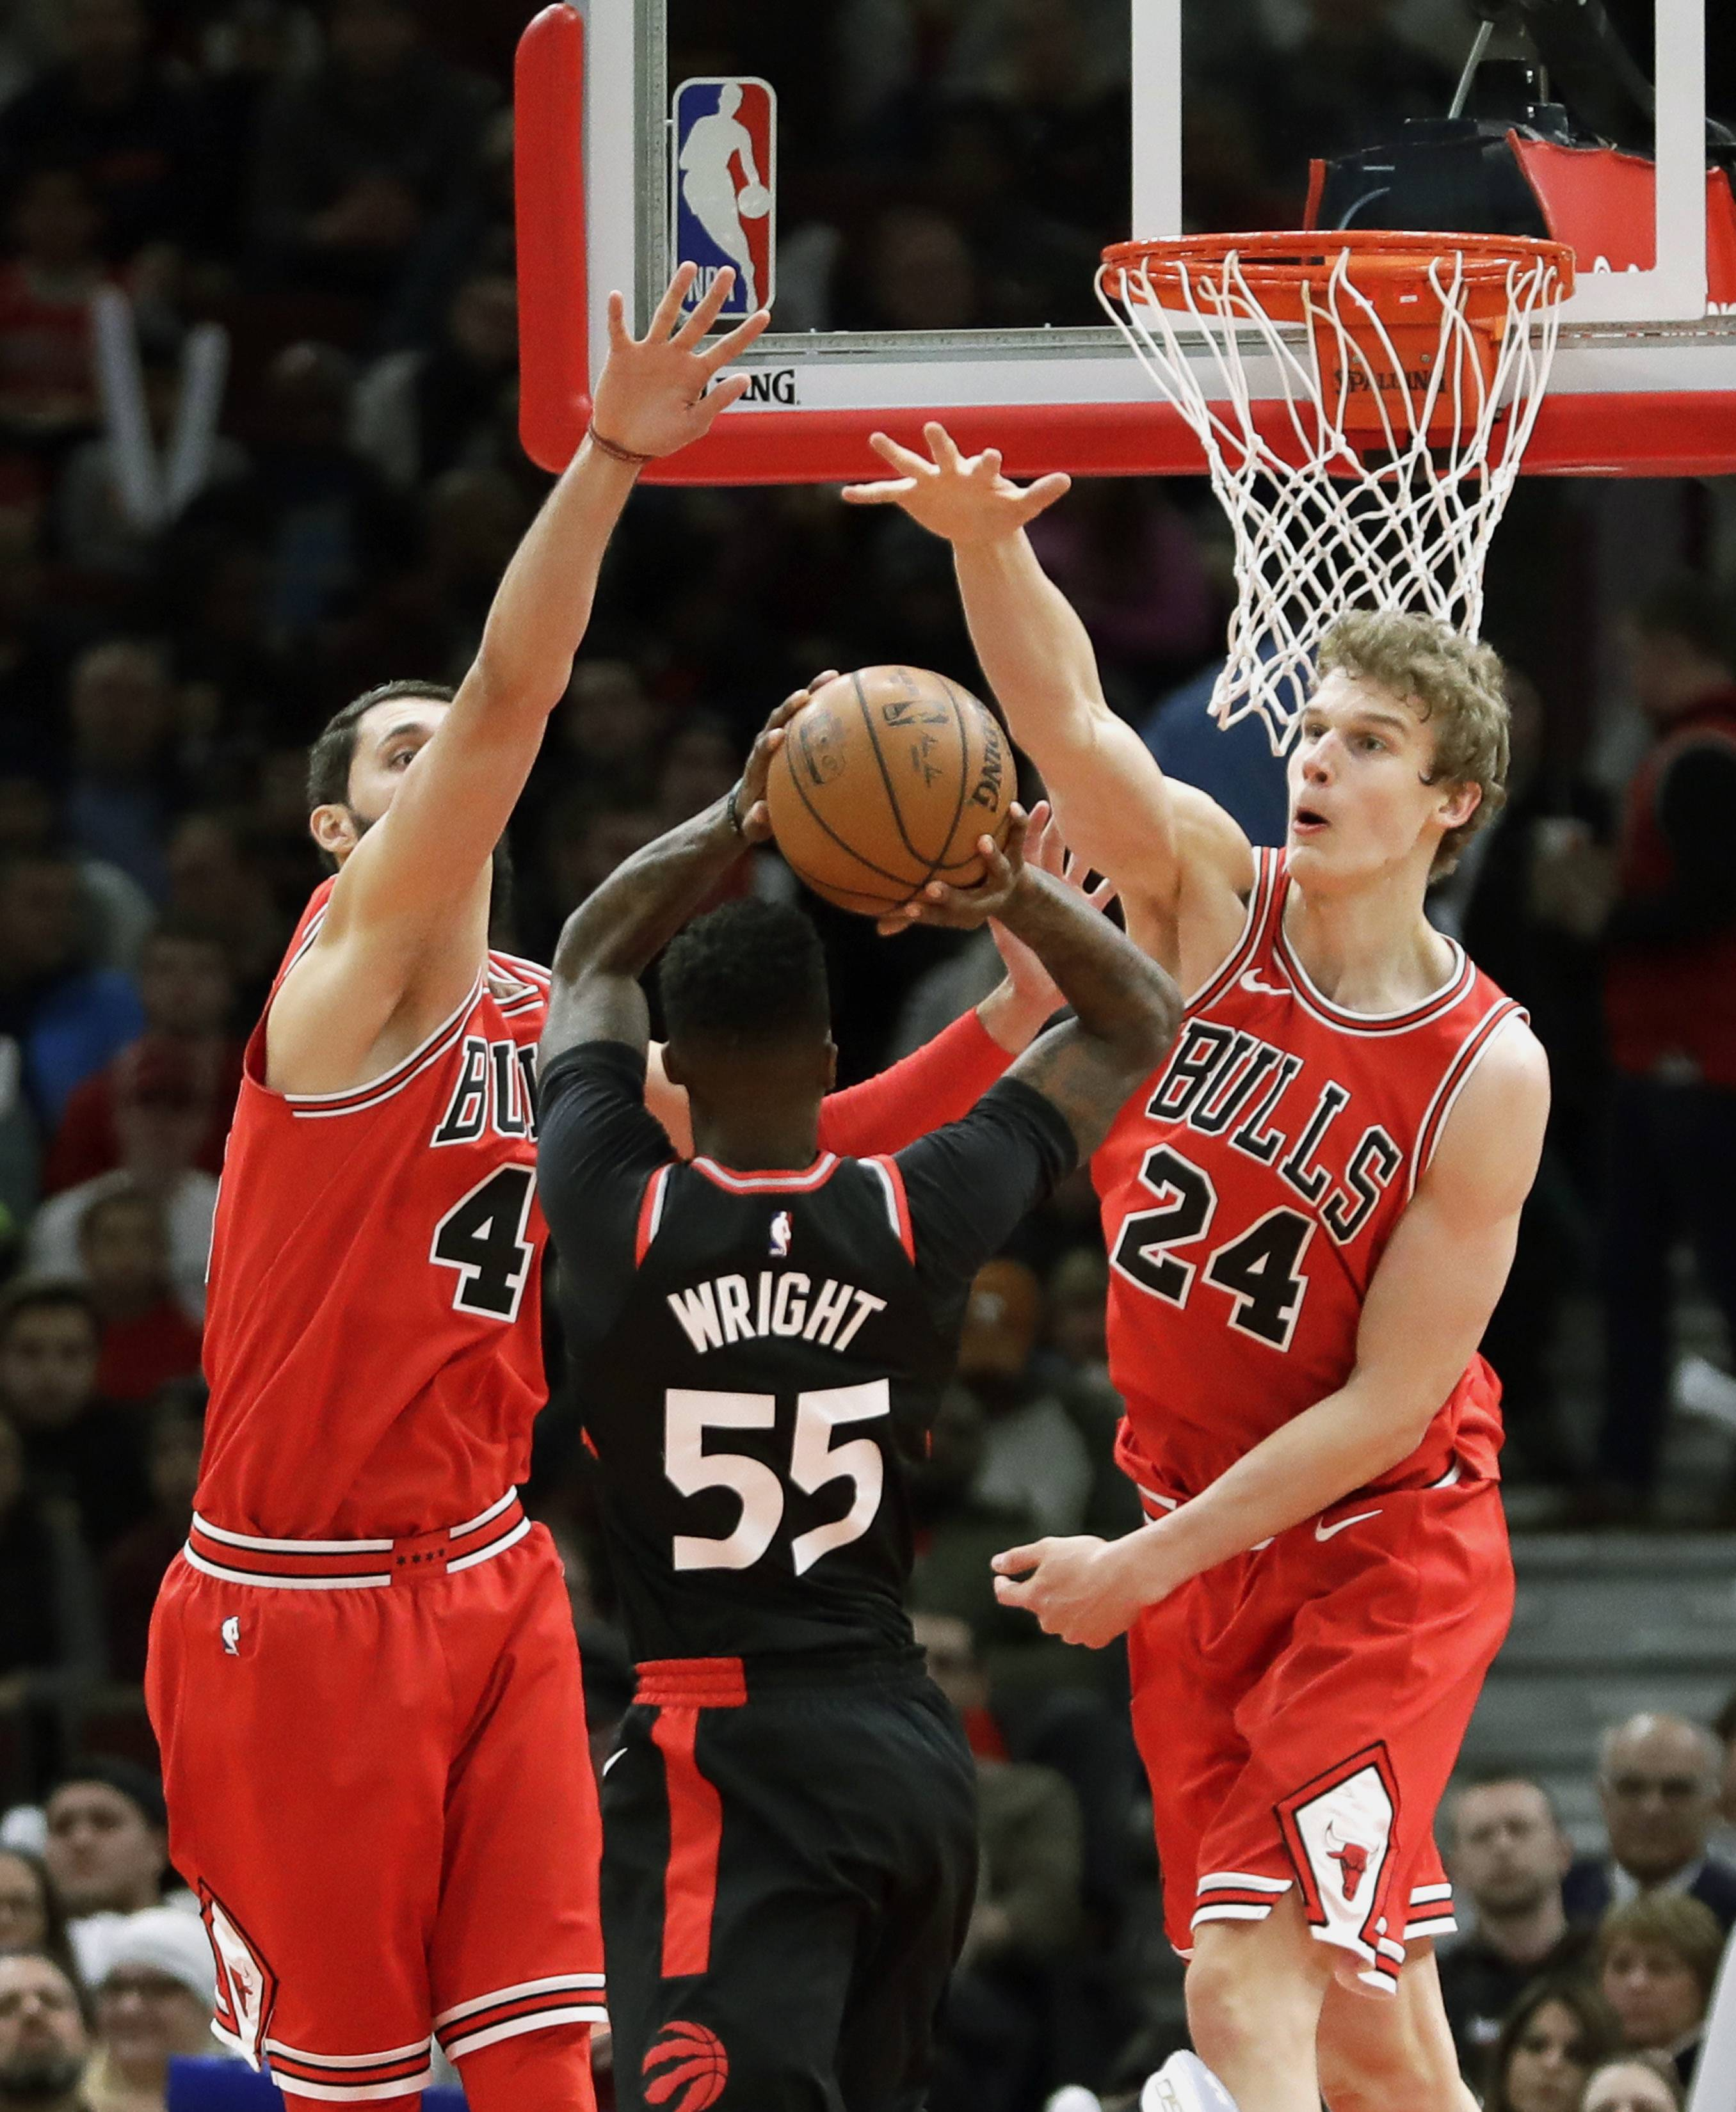 Do the Chicago Bulls think Nikola Mirotic, left, and Lauri Markkanen, far right, can play together or are they redundant? That's just one of the decisions the team must make in the coming weeks.